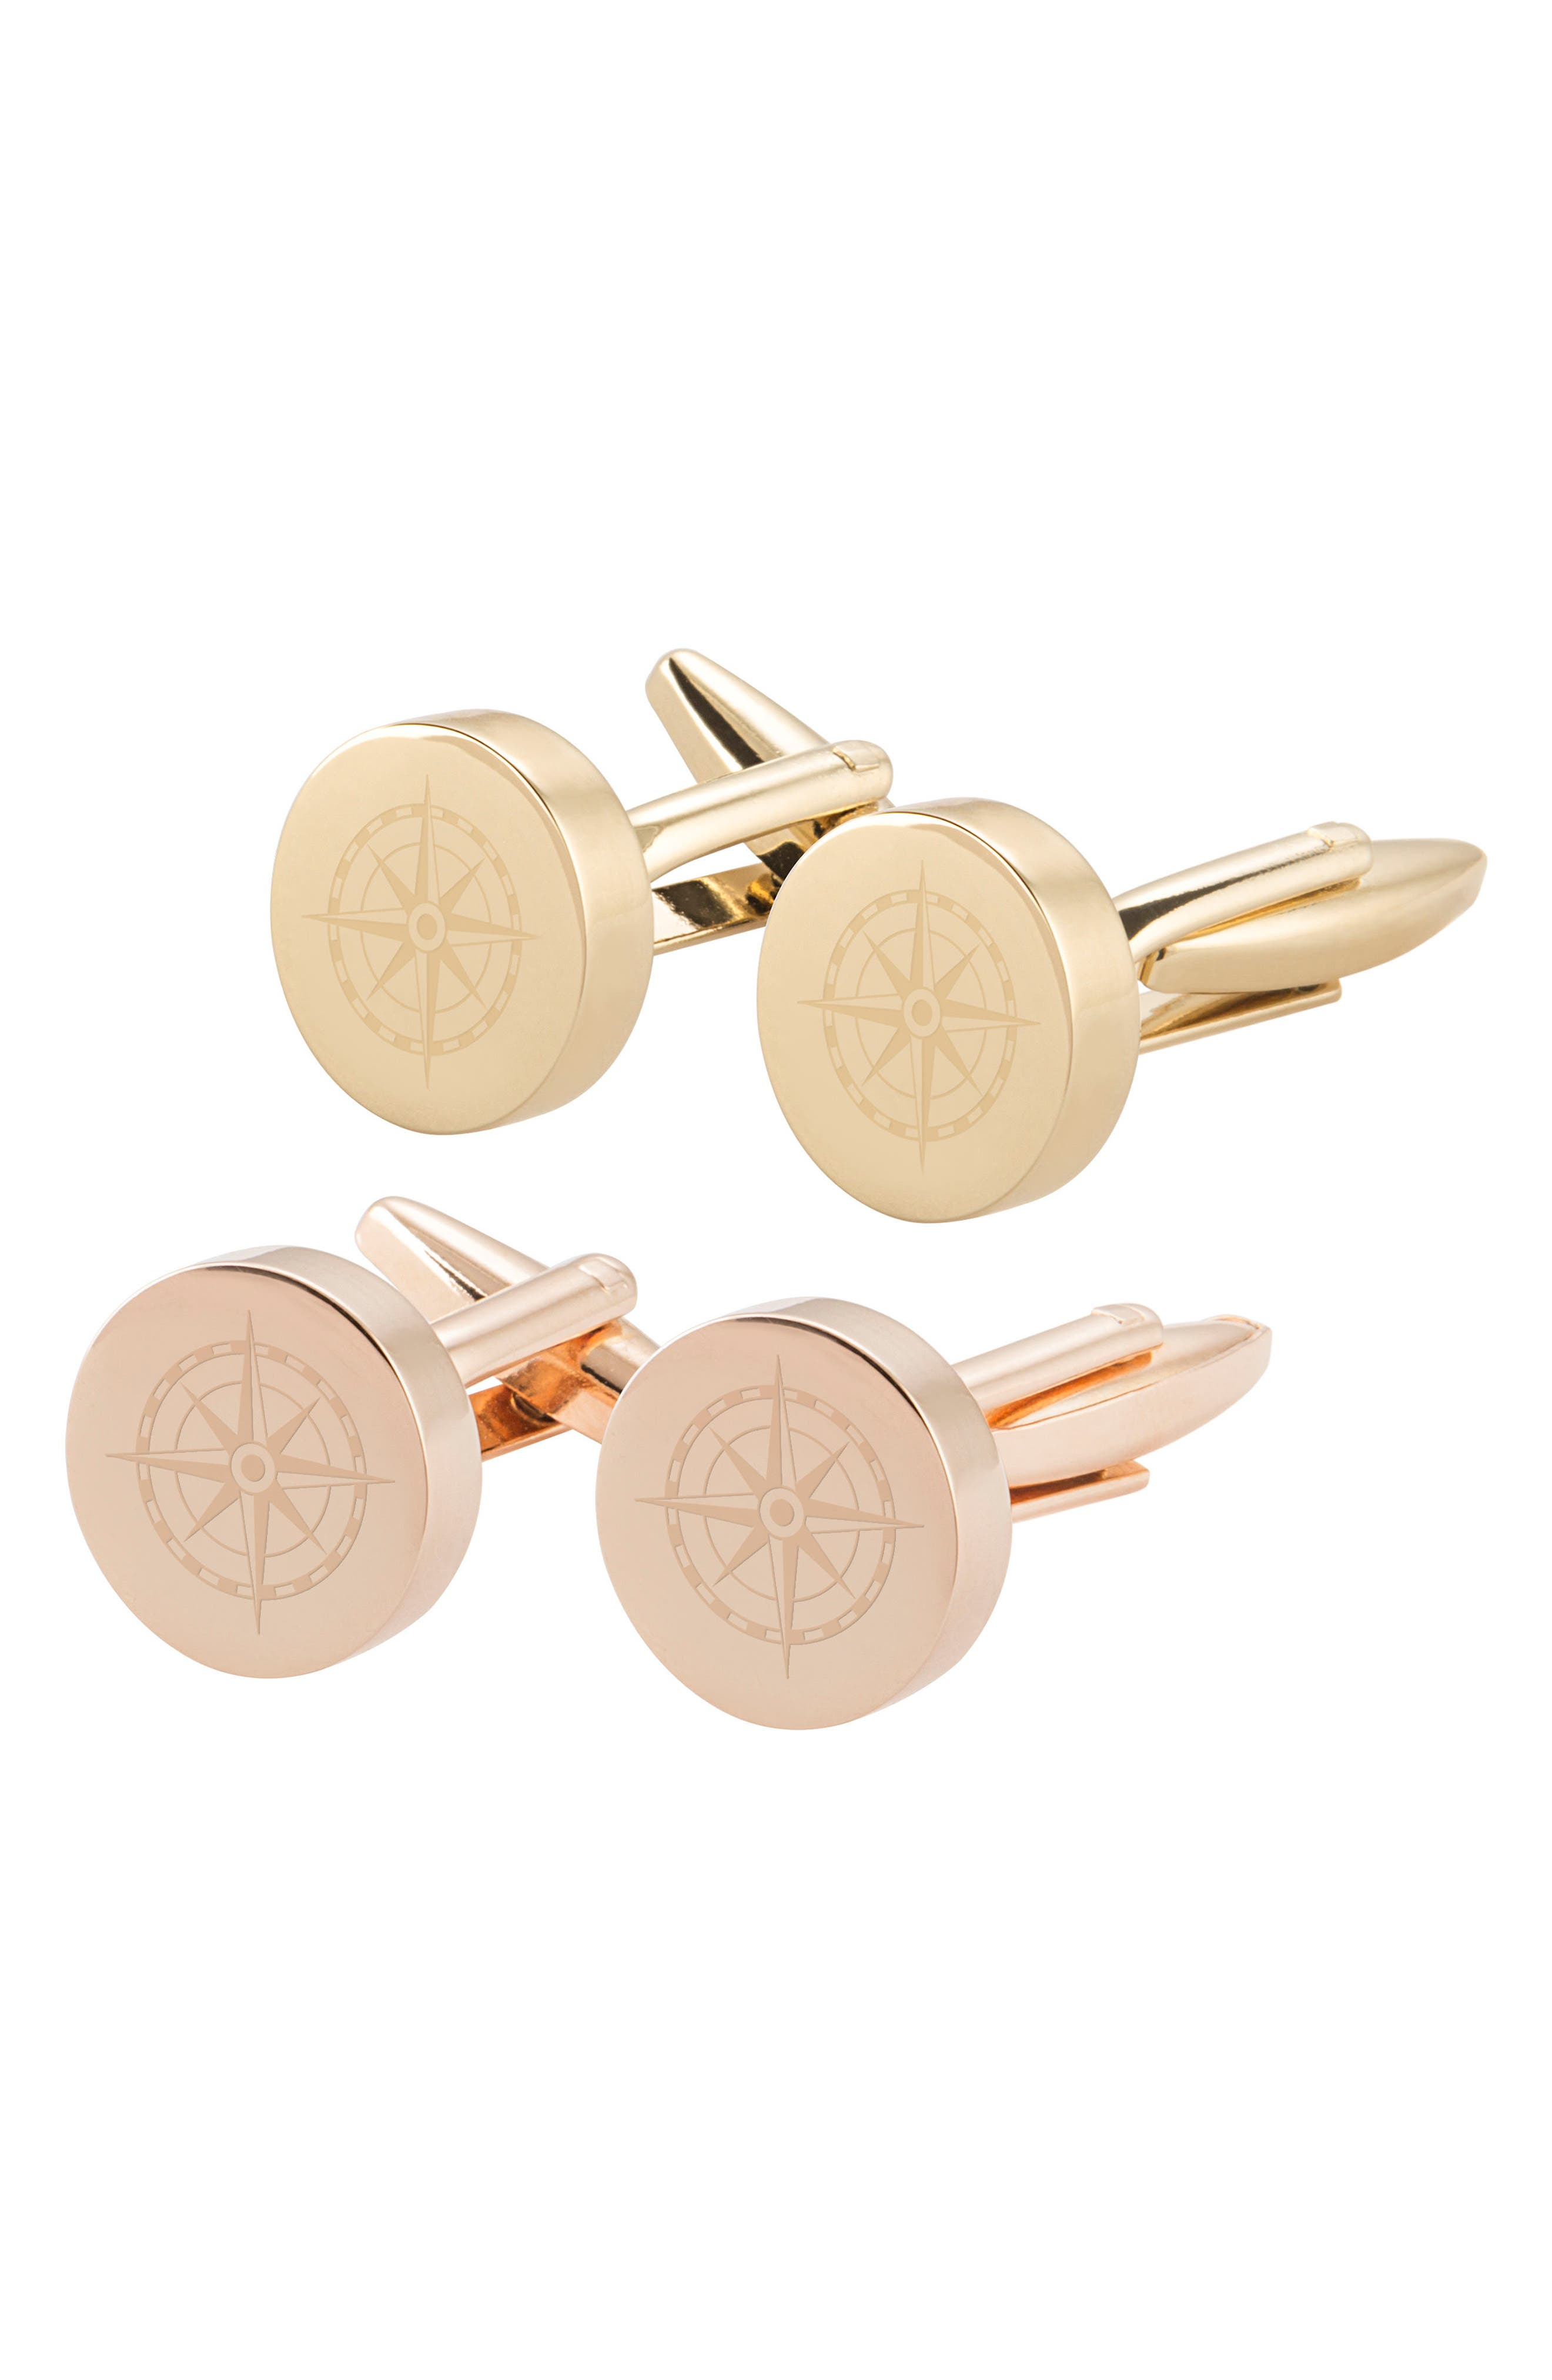 Compass Cuff Links,                             Alternate thumbnail 5, color,